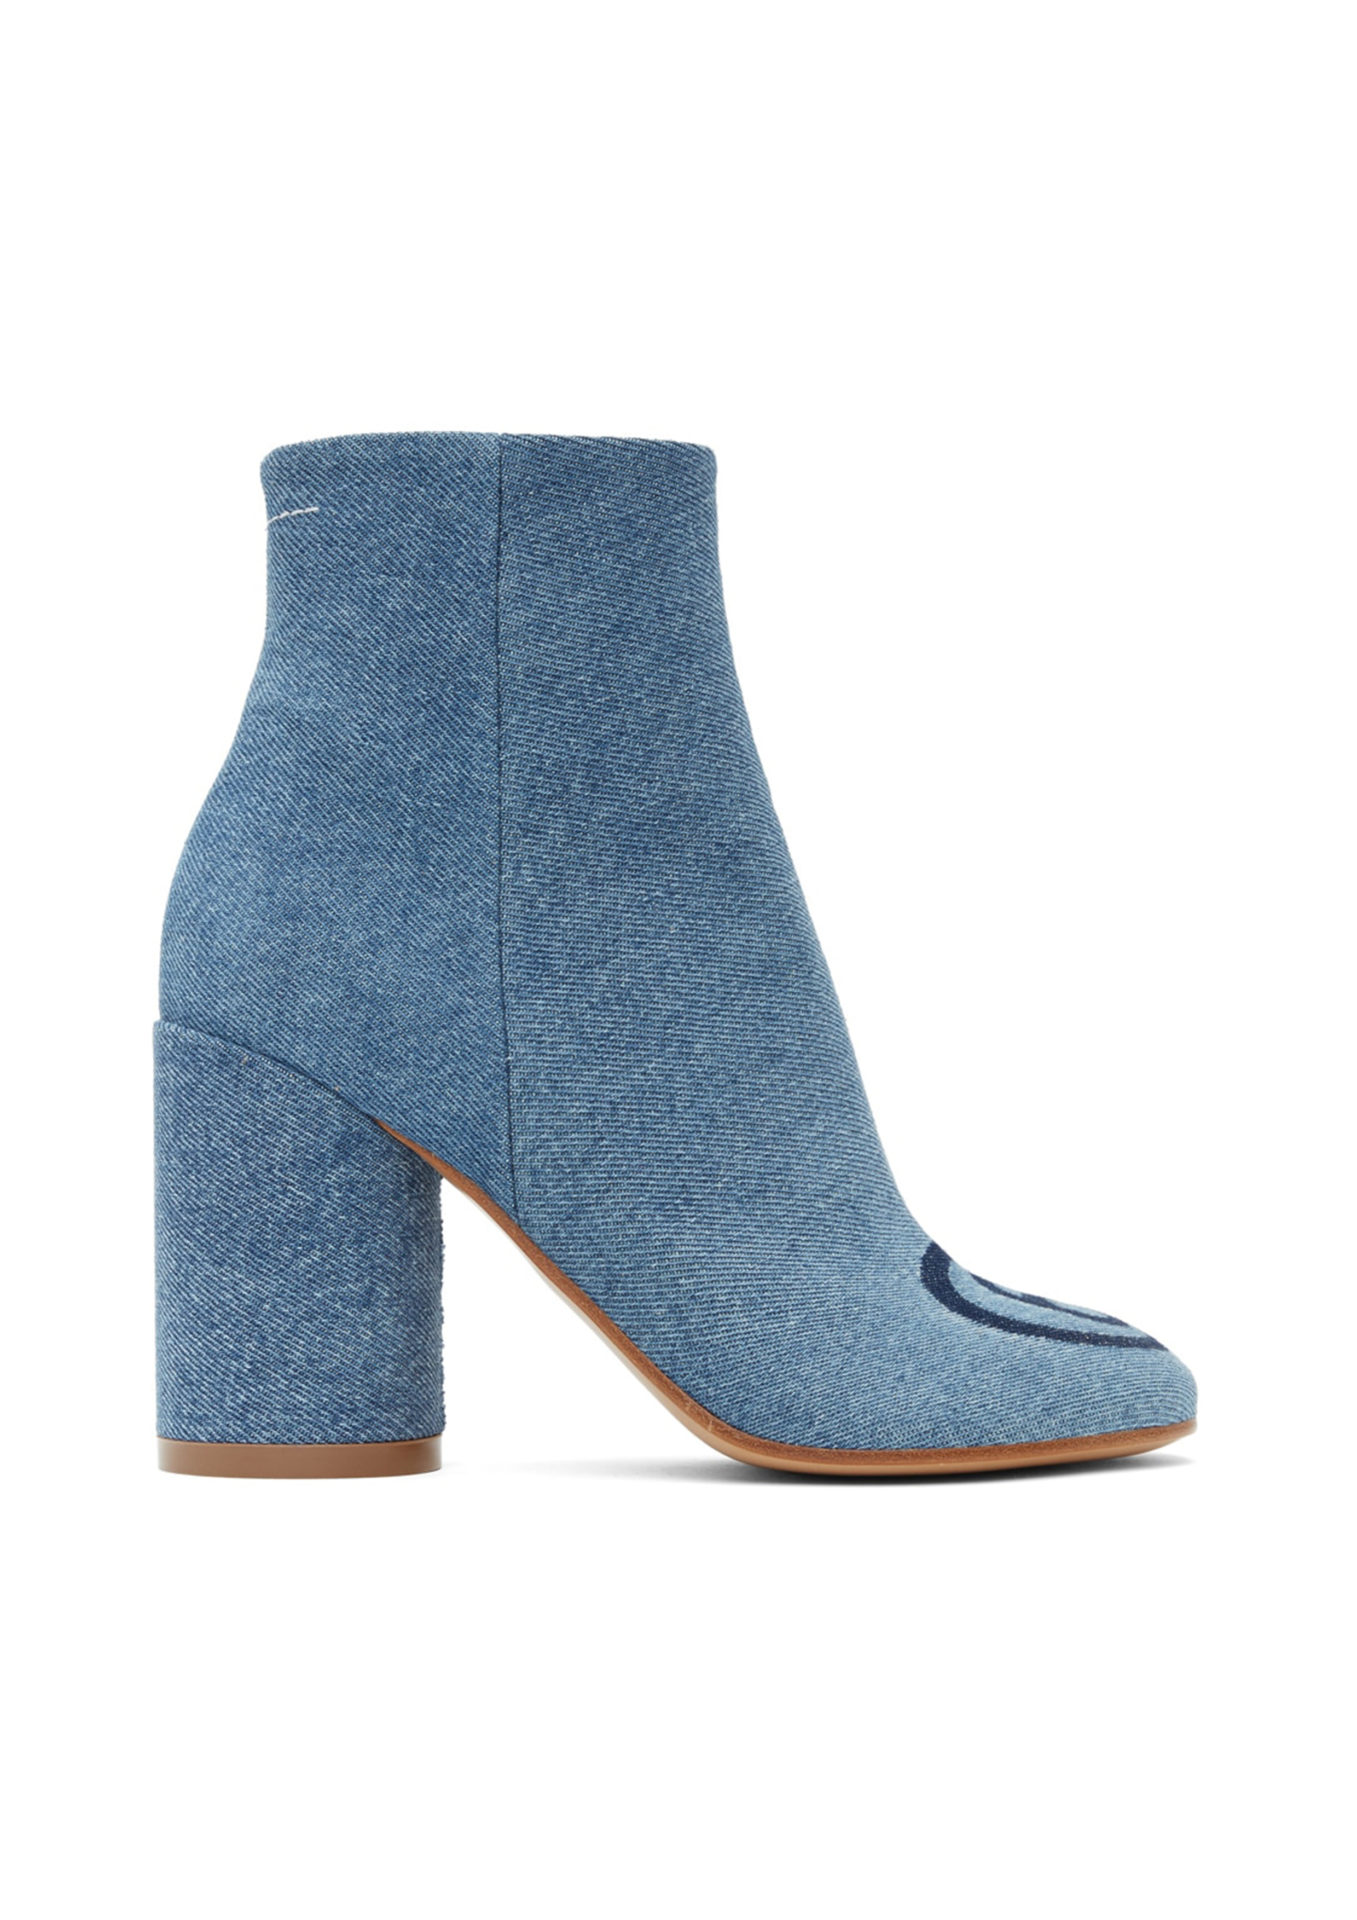 Bottines en denim bleues